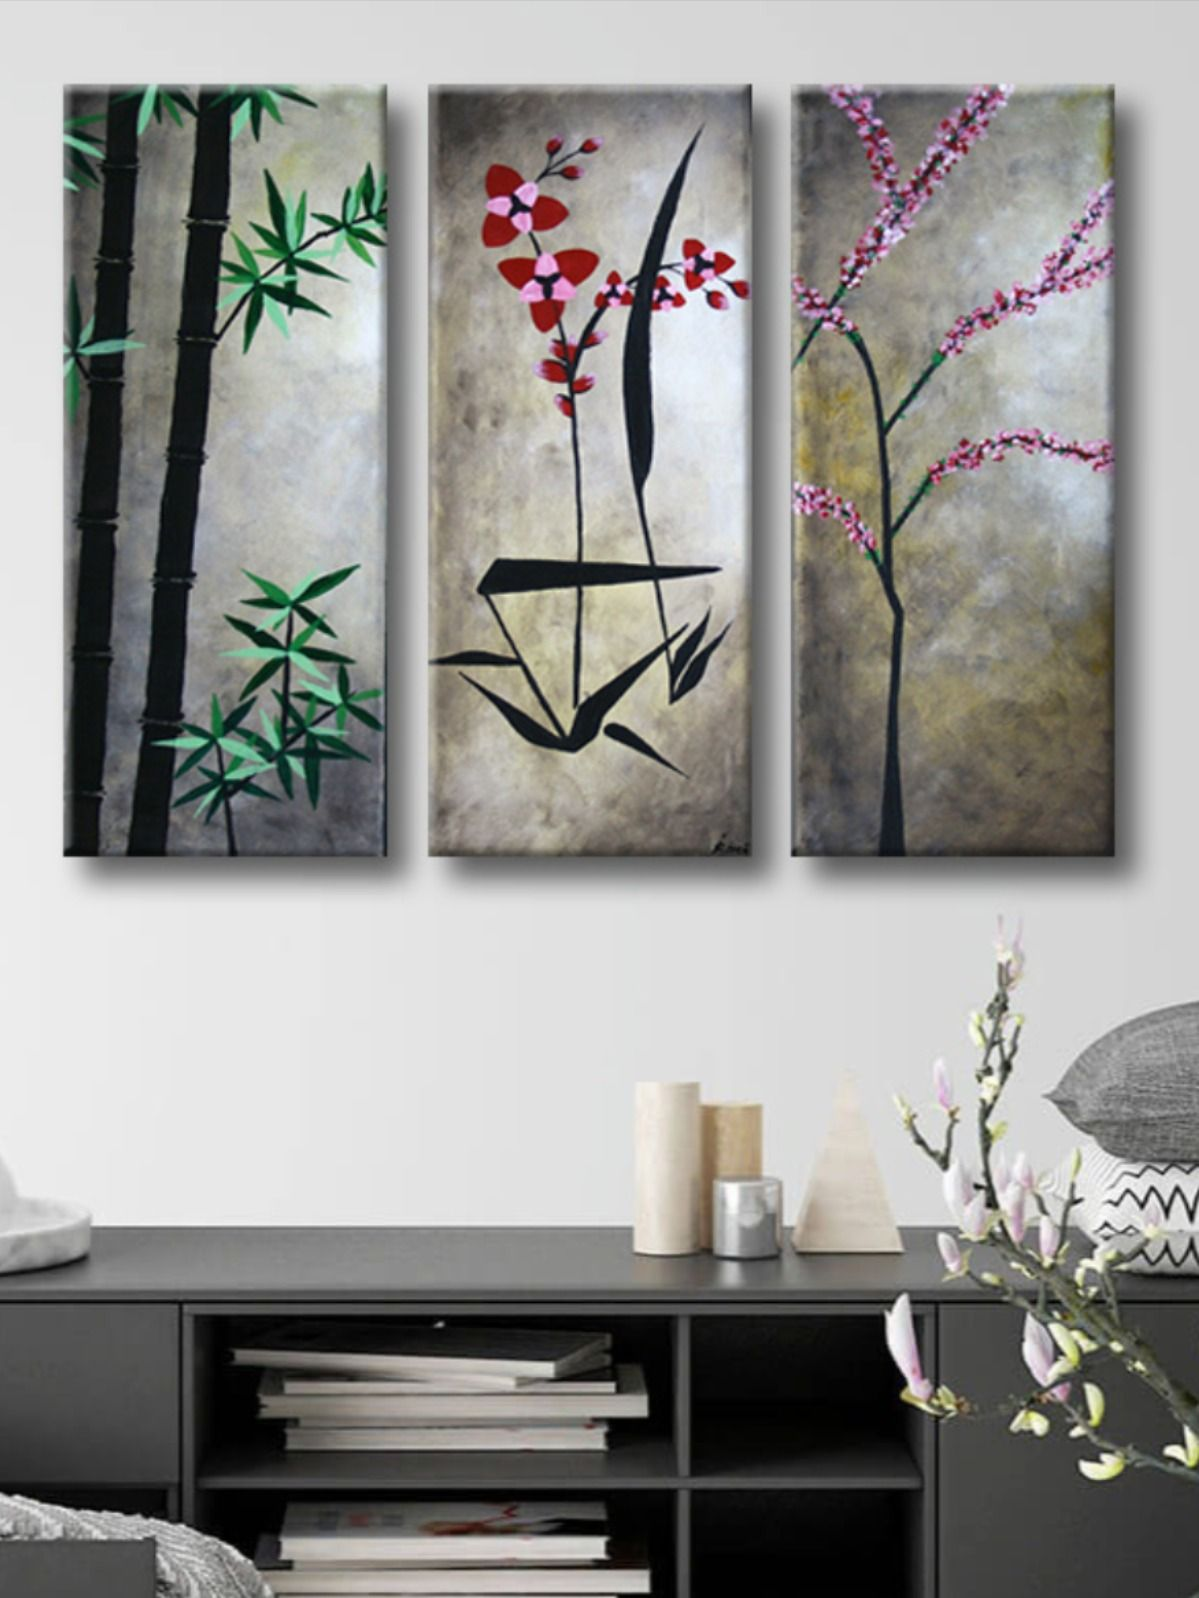 Abstract Asian Flowers Triptych Painting Original 3 Canvas Floral Acrylic On Canvas Home Wall Artwork Ready To Hang Made To Order Asian In 2020 Asian Flowers Wall Artwork Flower Painting